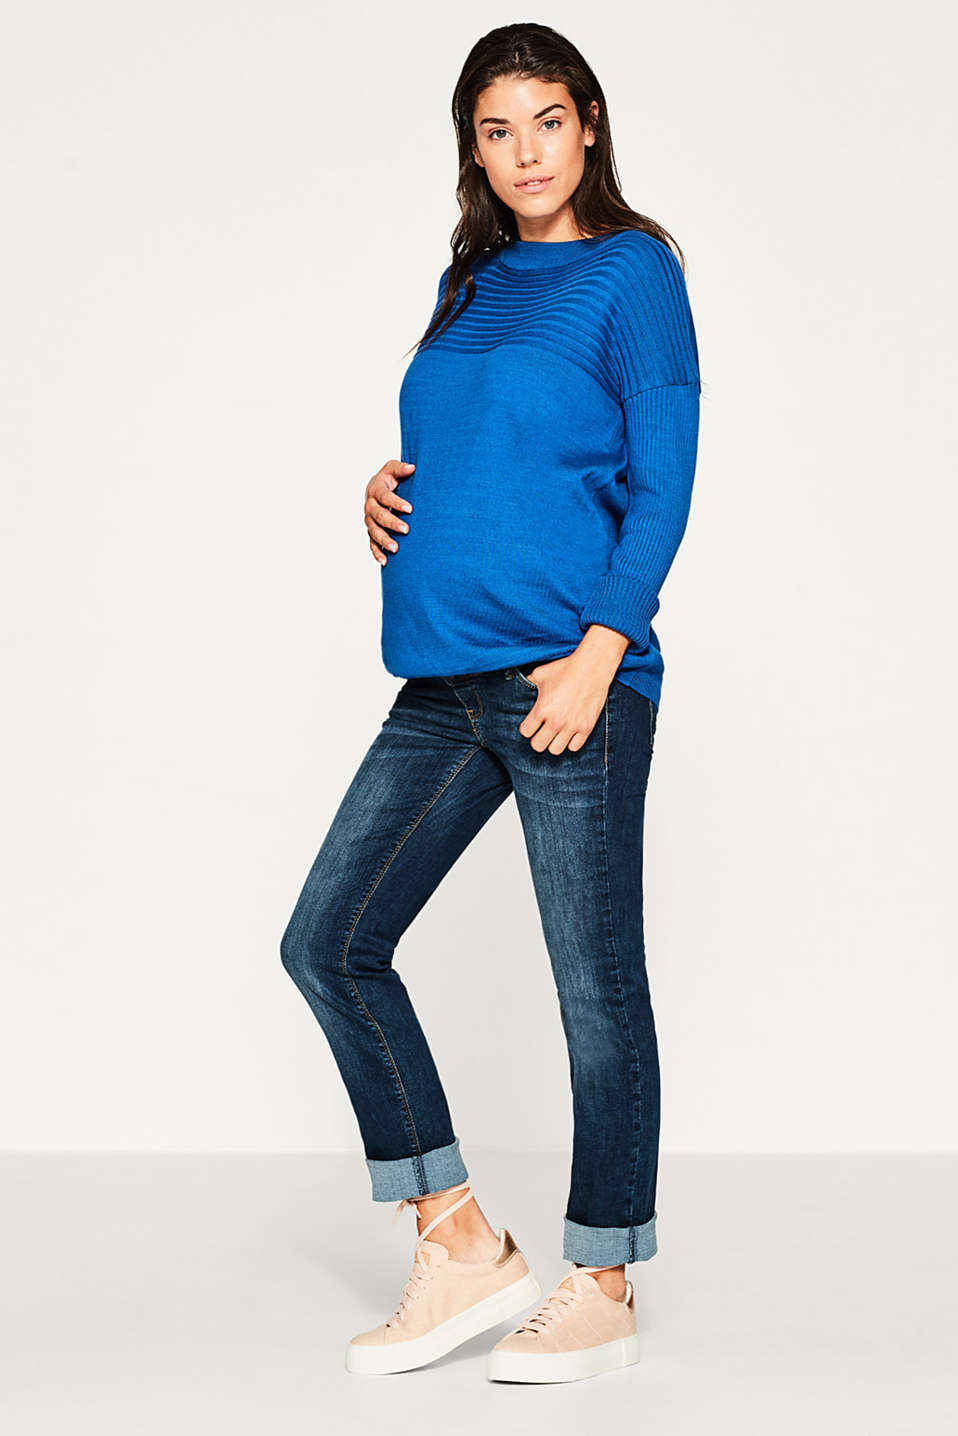 Ribbed texture jumper, cotton blend